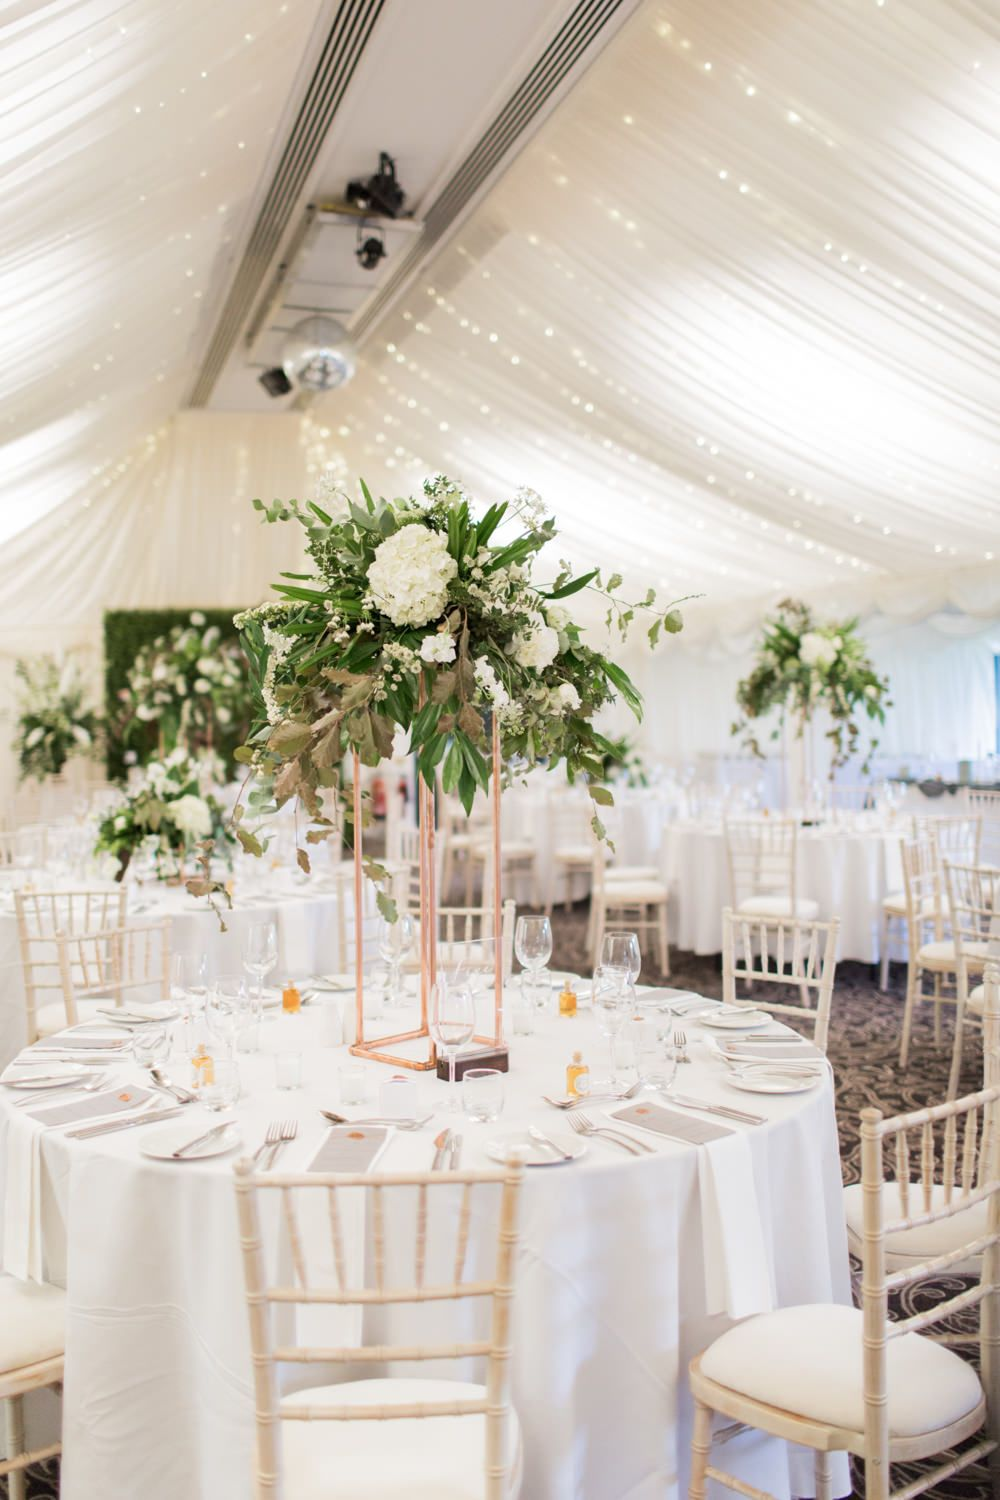 Tall Fl Centrepieces Greenery White Marquee Wedding At The Villa Levens With Copper Details Bowtie And Belle Photography